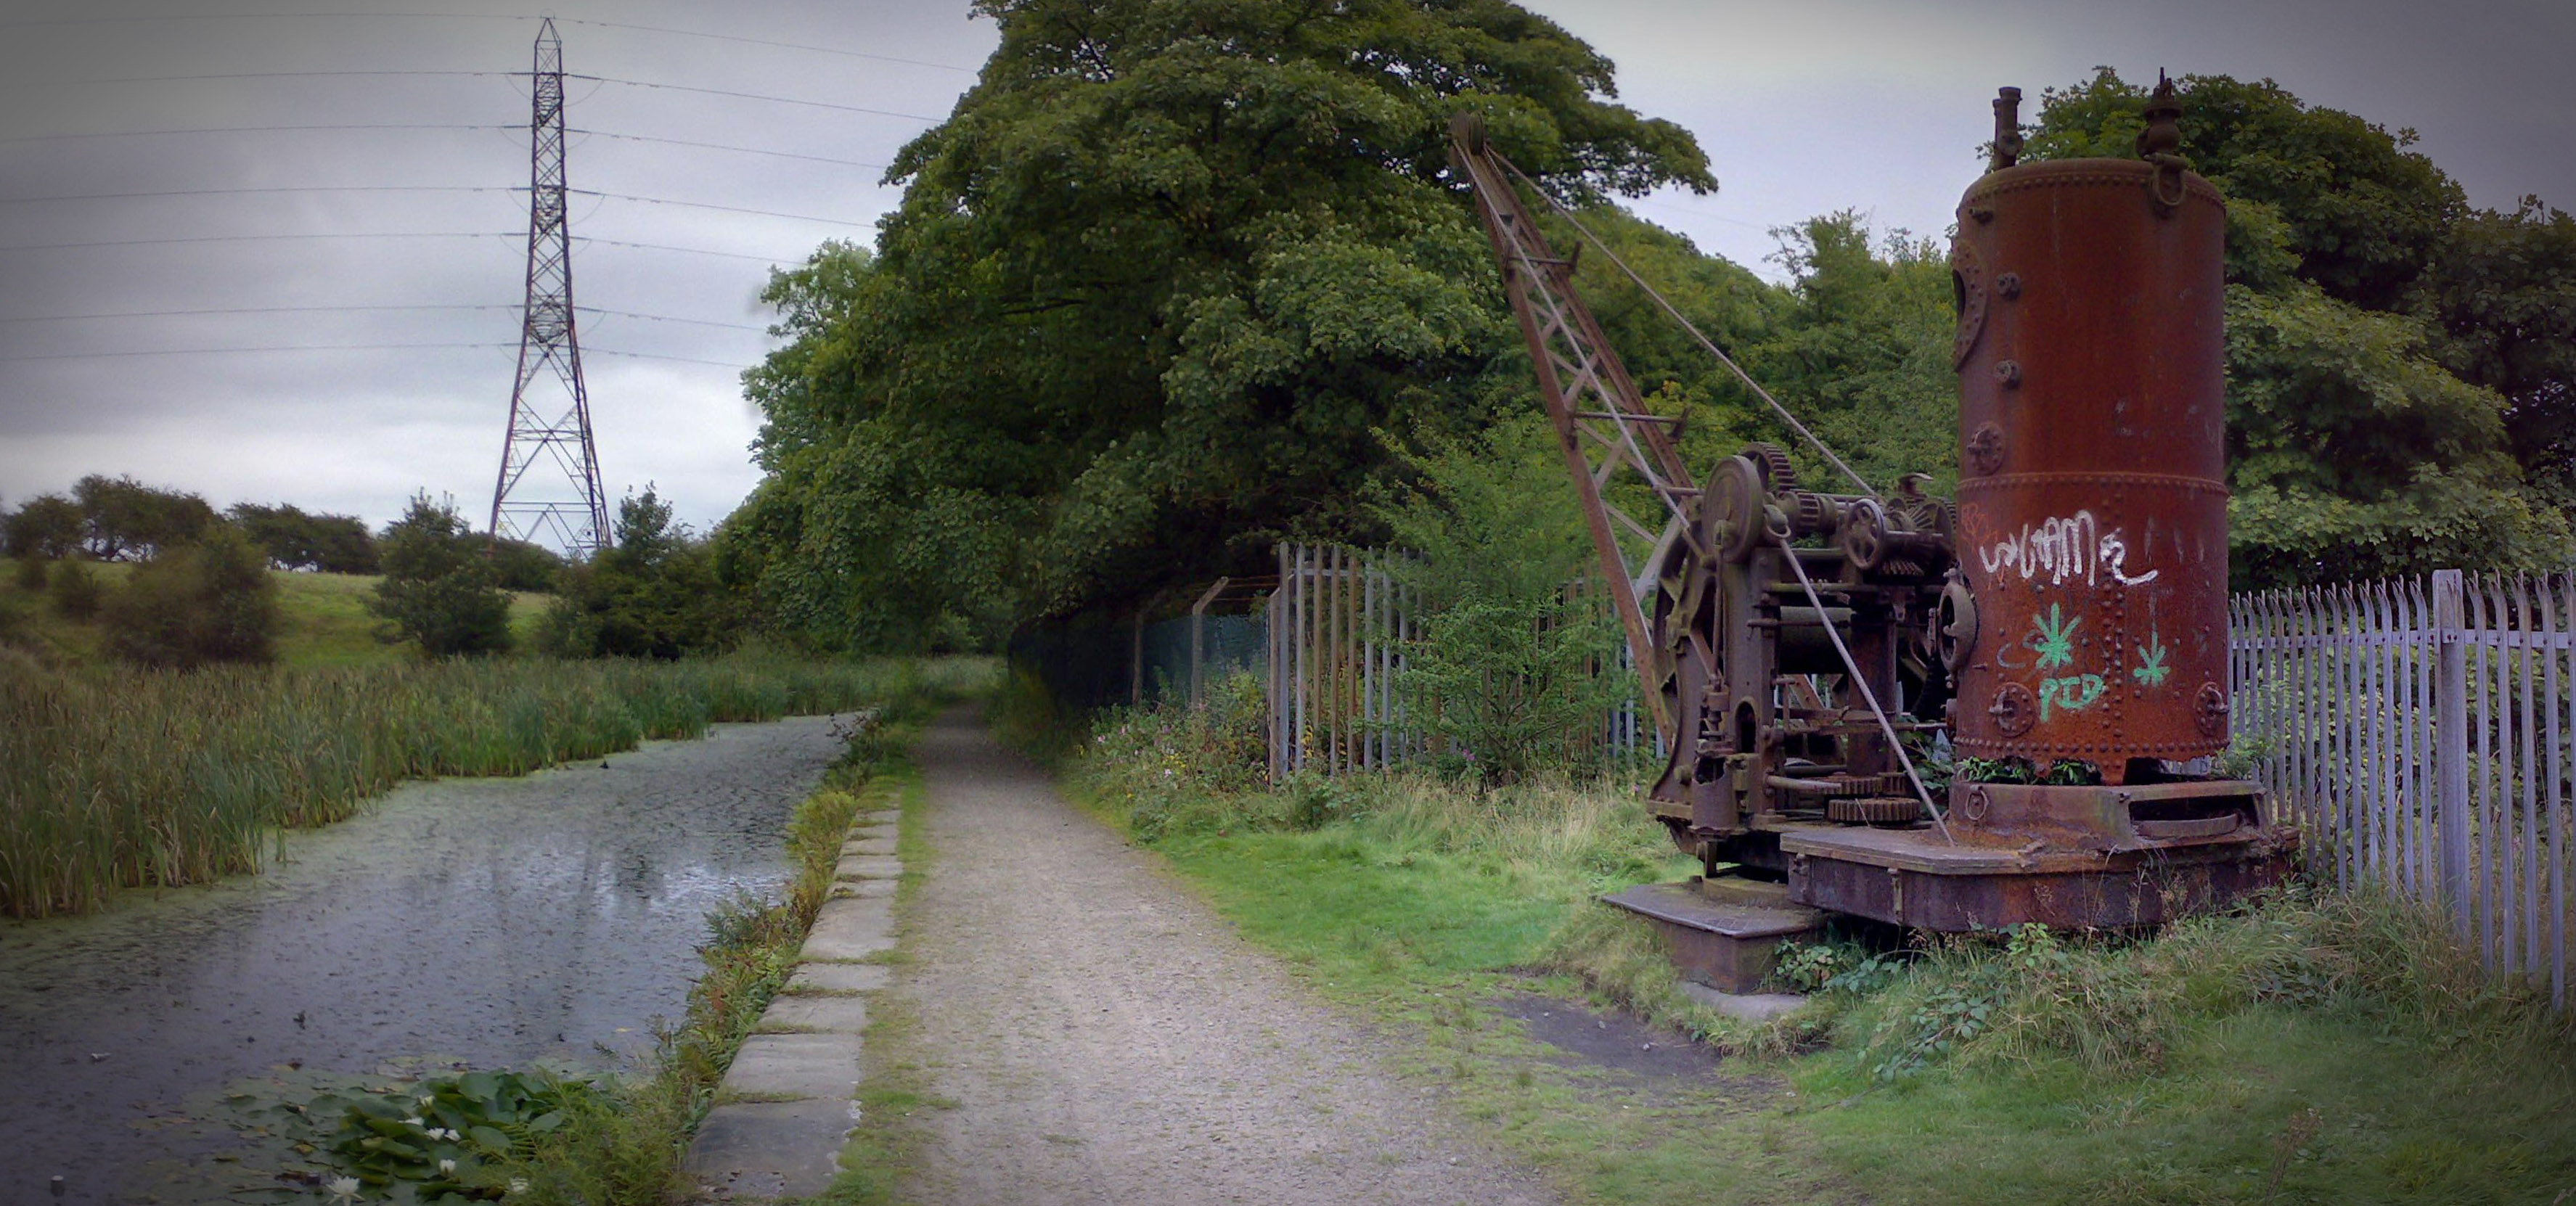 Mount Sion Steam Crane